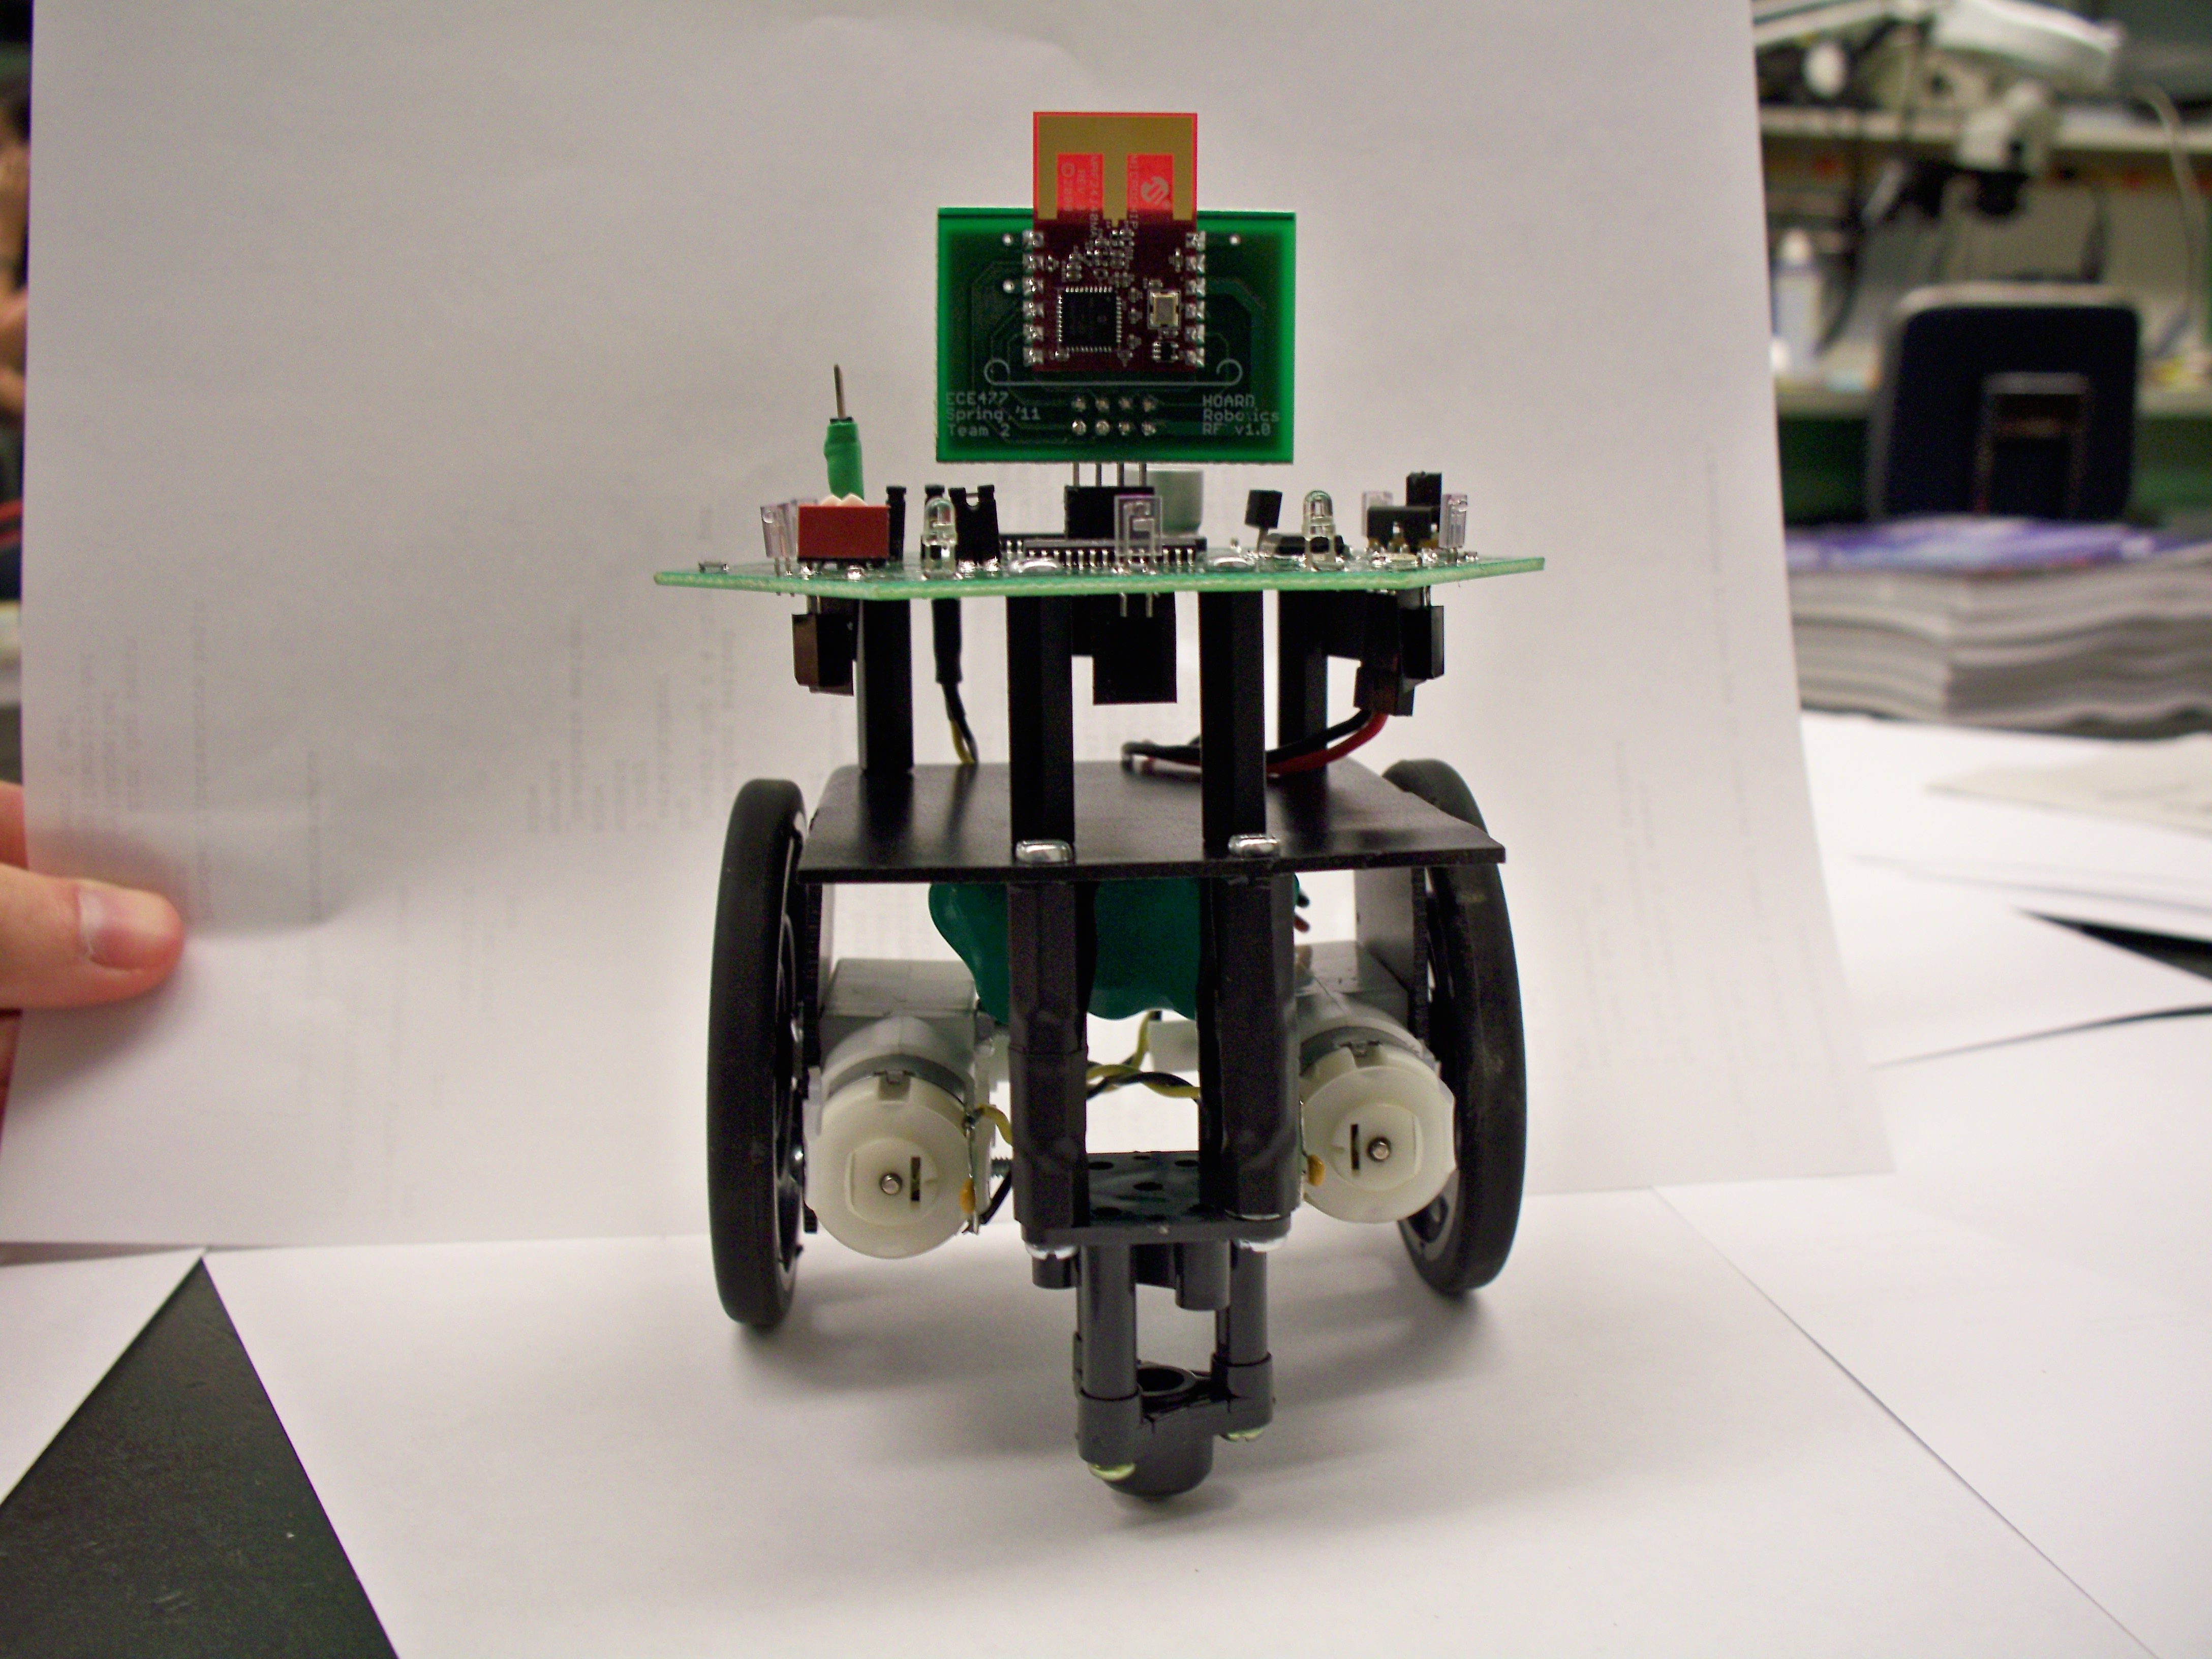 Trentons Lab Notebook Toy And Carefully Look For Circuitry That You Can Bend Manipulate I Also Charged Some More Batteries We Recieved The Mouser Order Were Waiting So Able To Finish Robot Boards